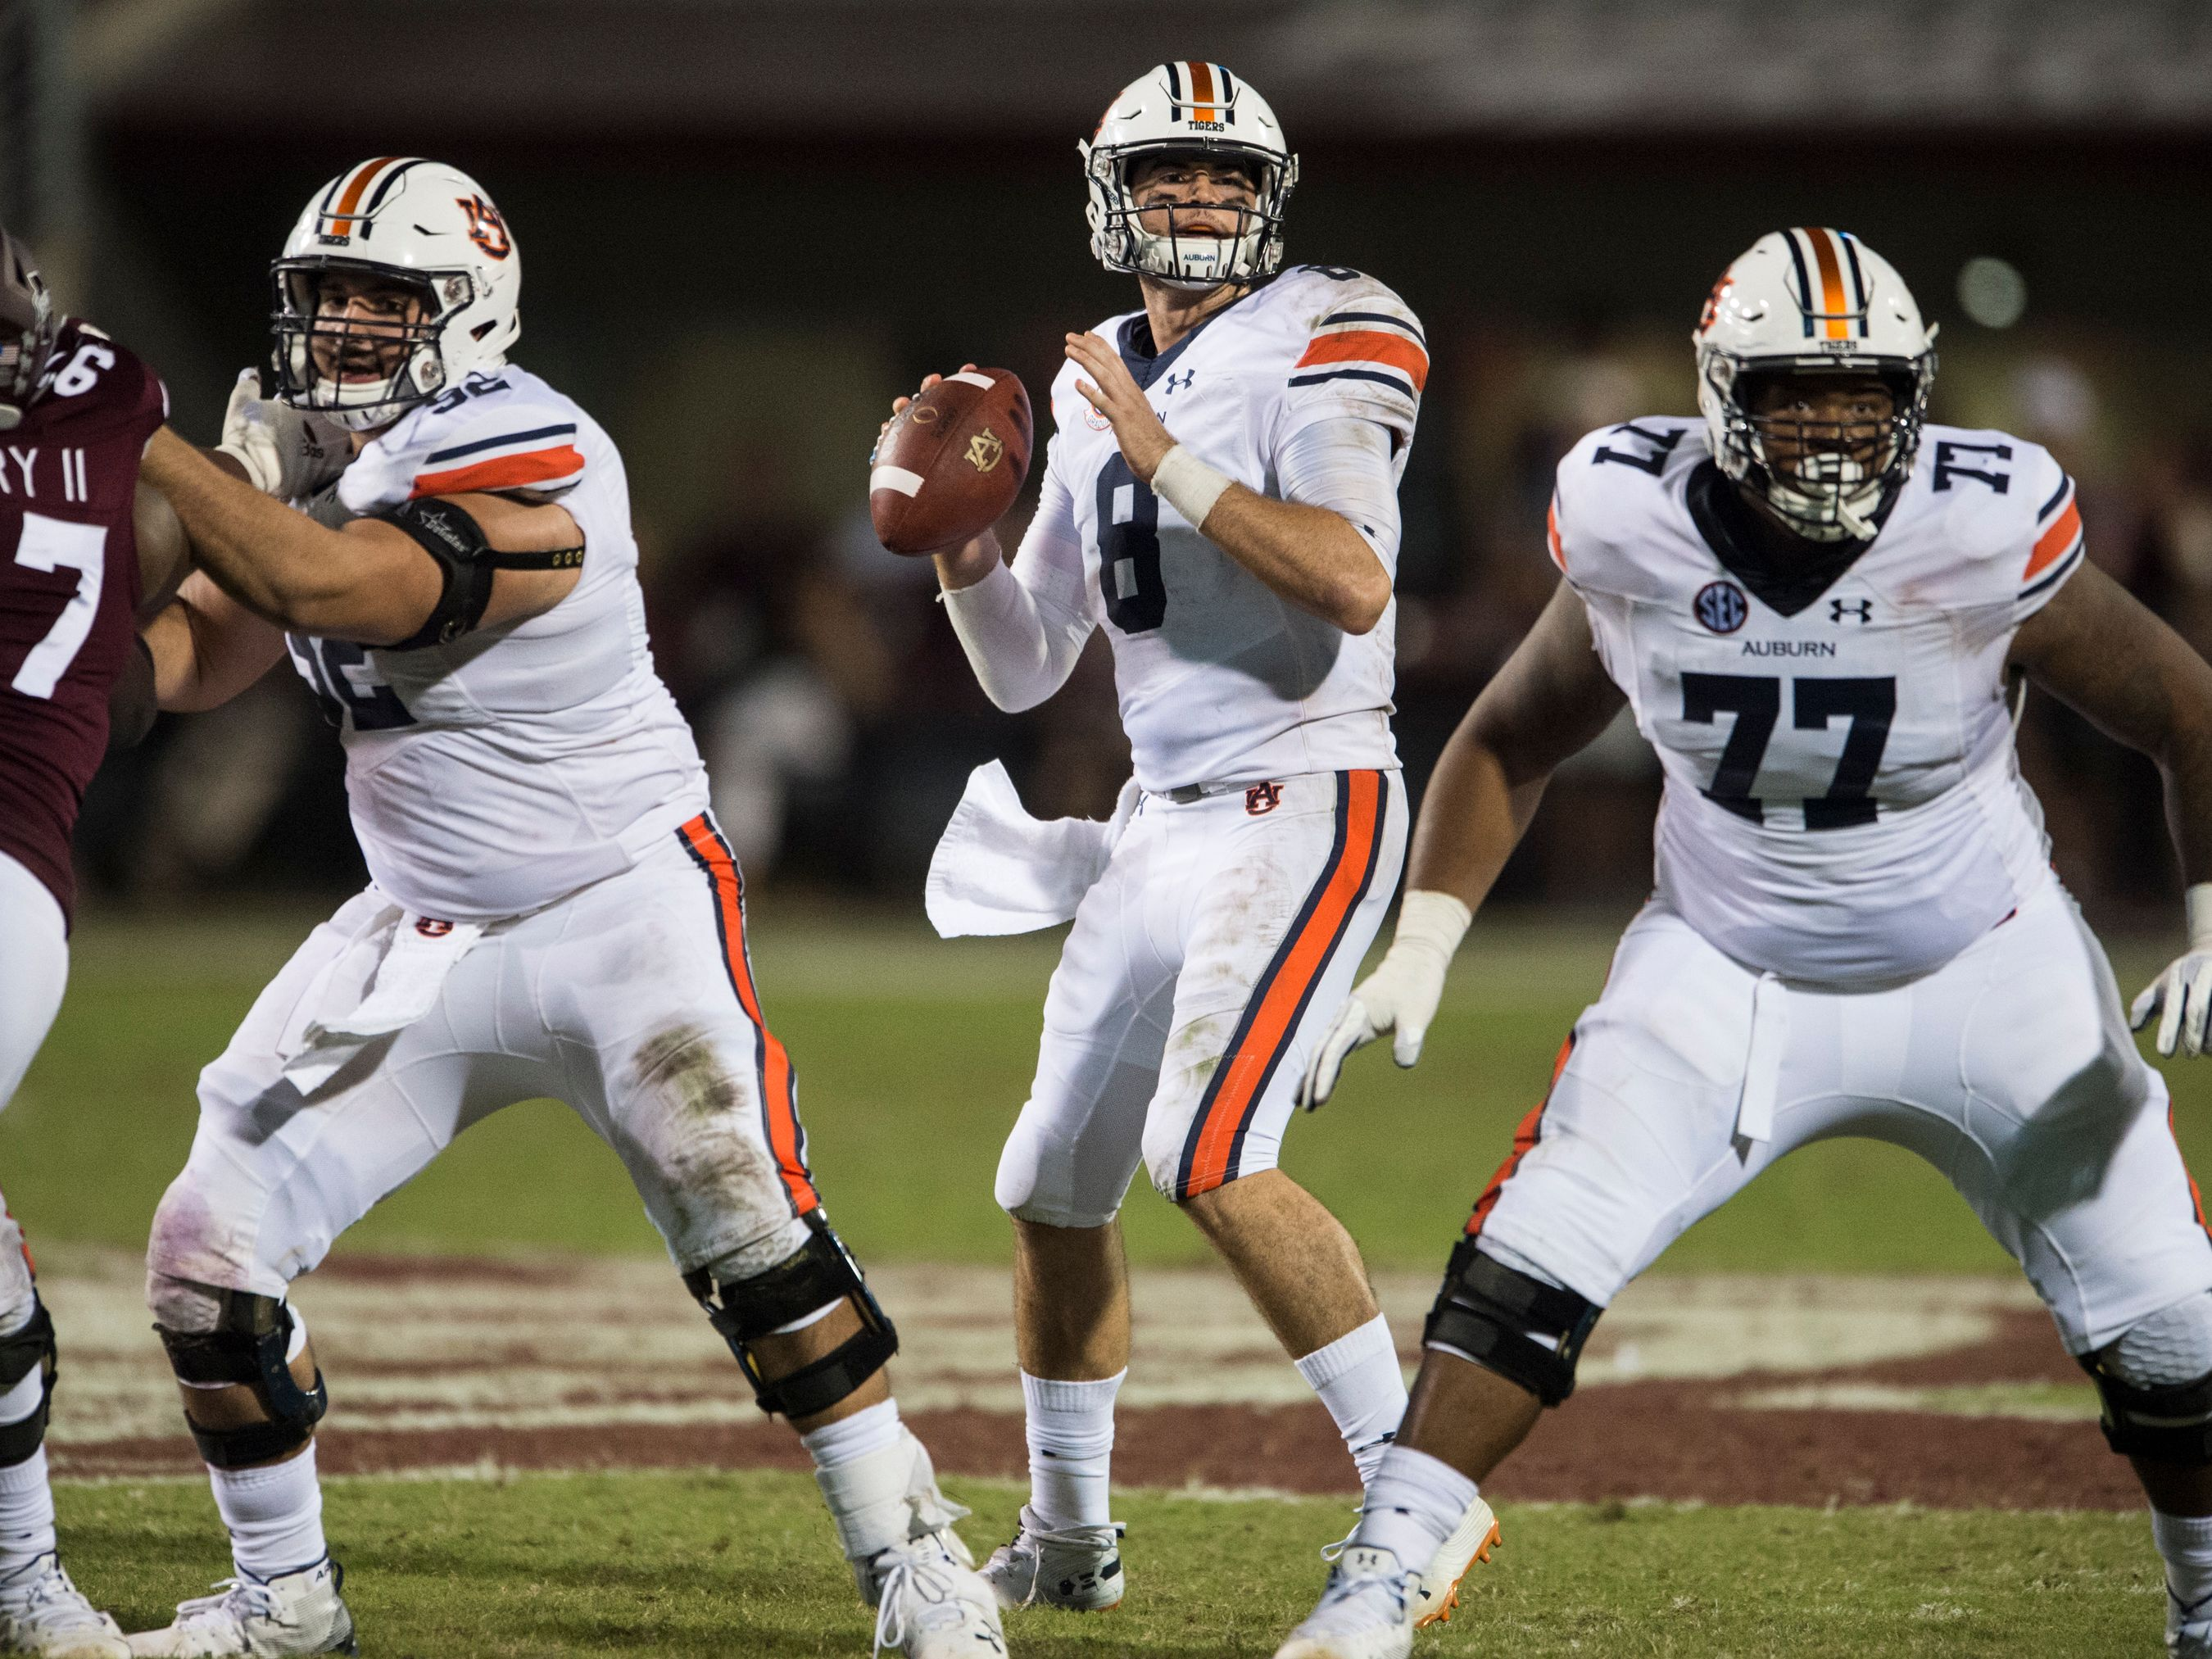 Auburn Vs. Tennessee: Game Time, TV Channel, Where To